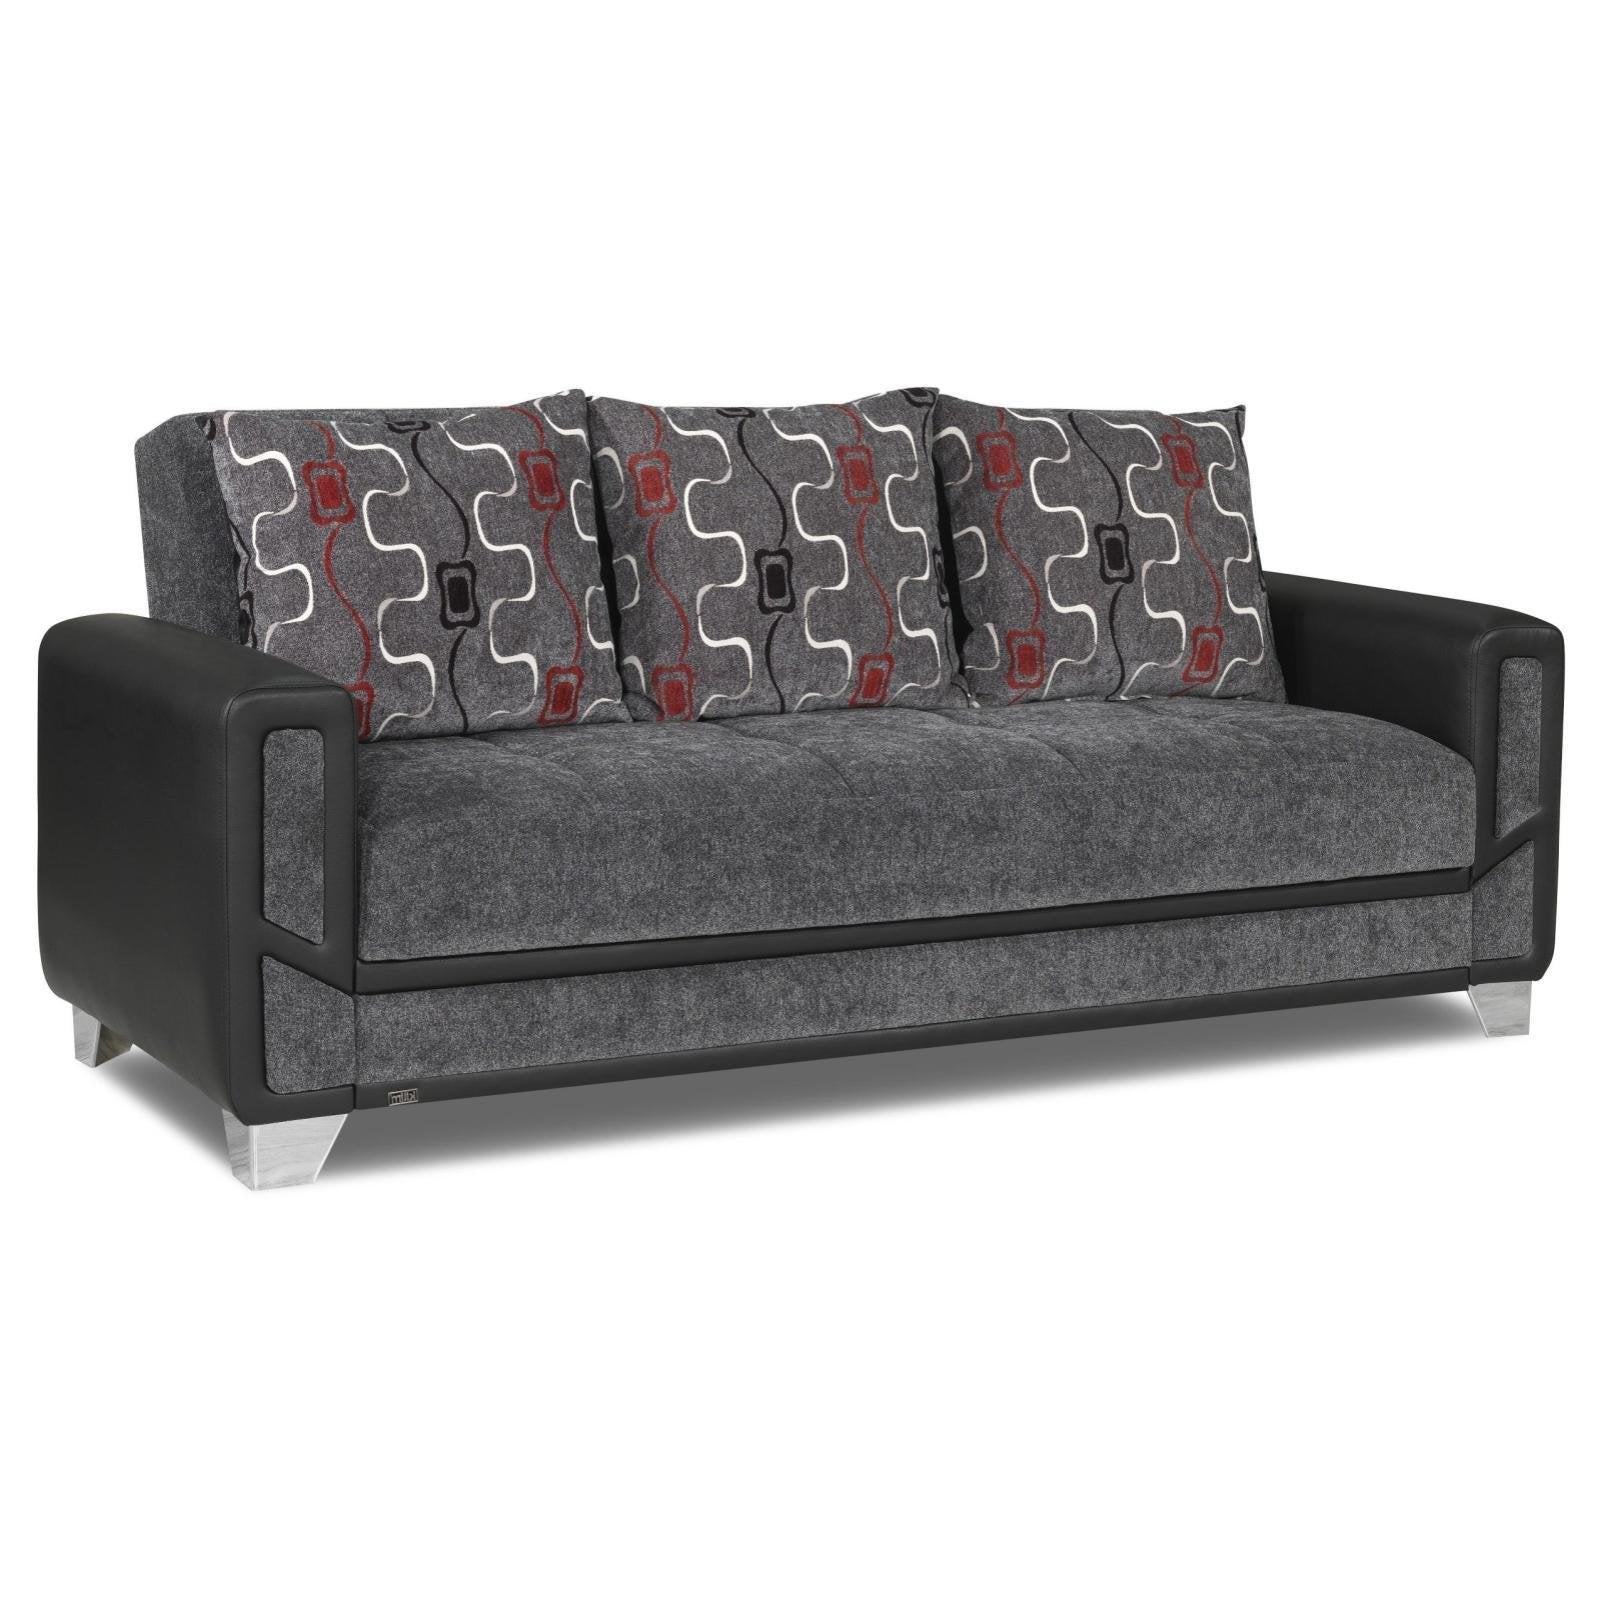 mondo grey sleep sofa adams furniture. Black Bedroom Furniture Sets. Home Design Ideas